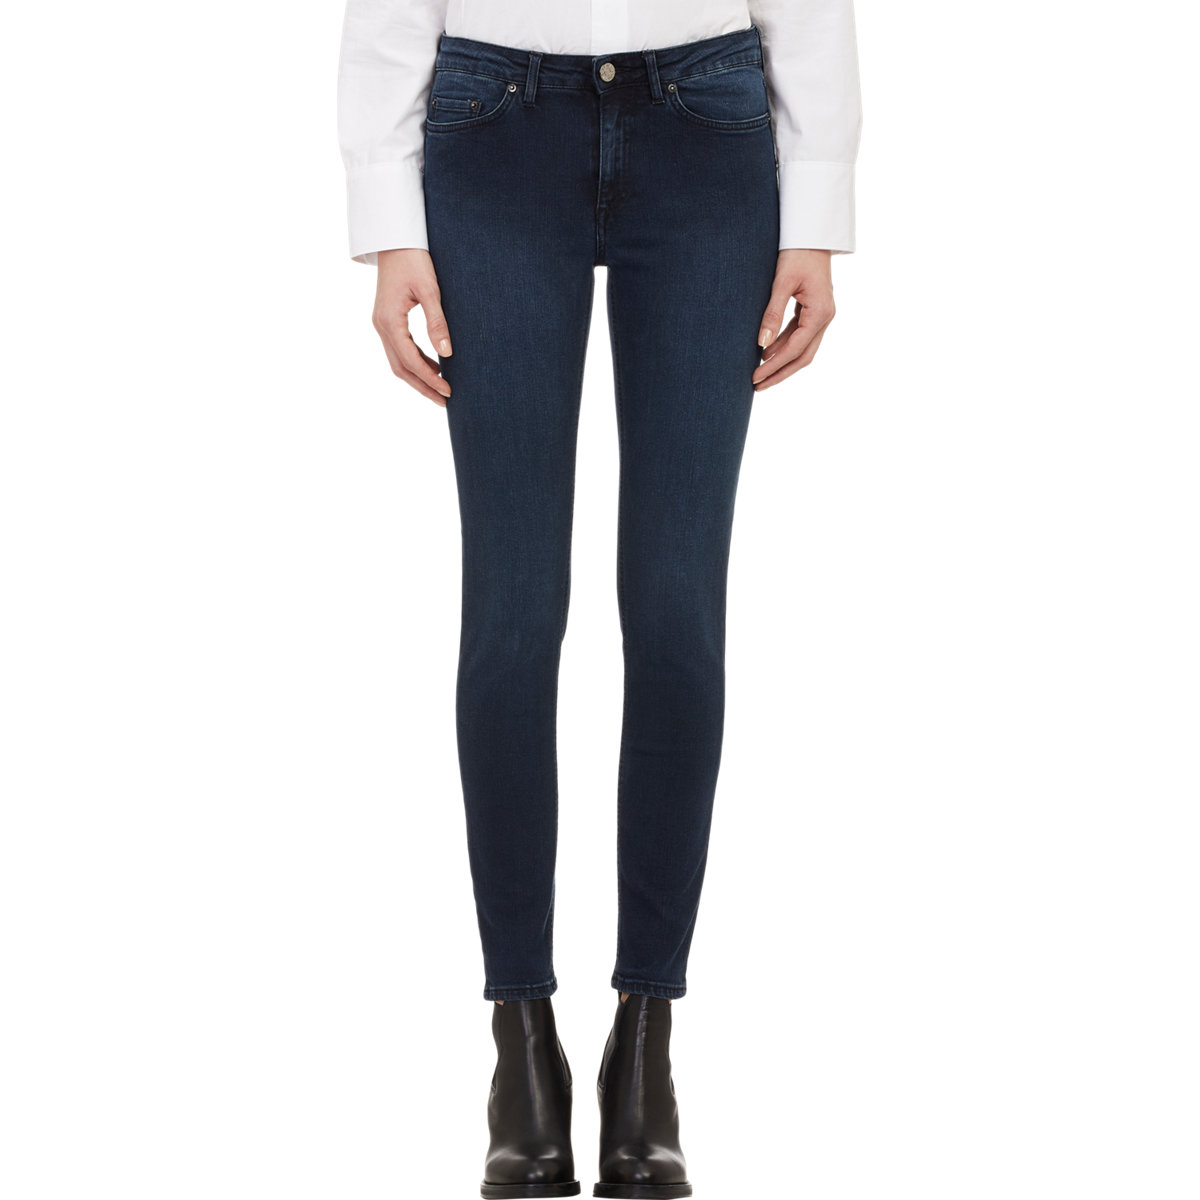 acne studios skin 5 skinny jeans in blue lyst. Black Bedroom Furniture Sets. Home Design Ideas